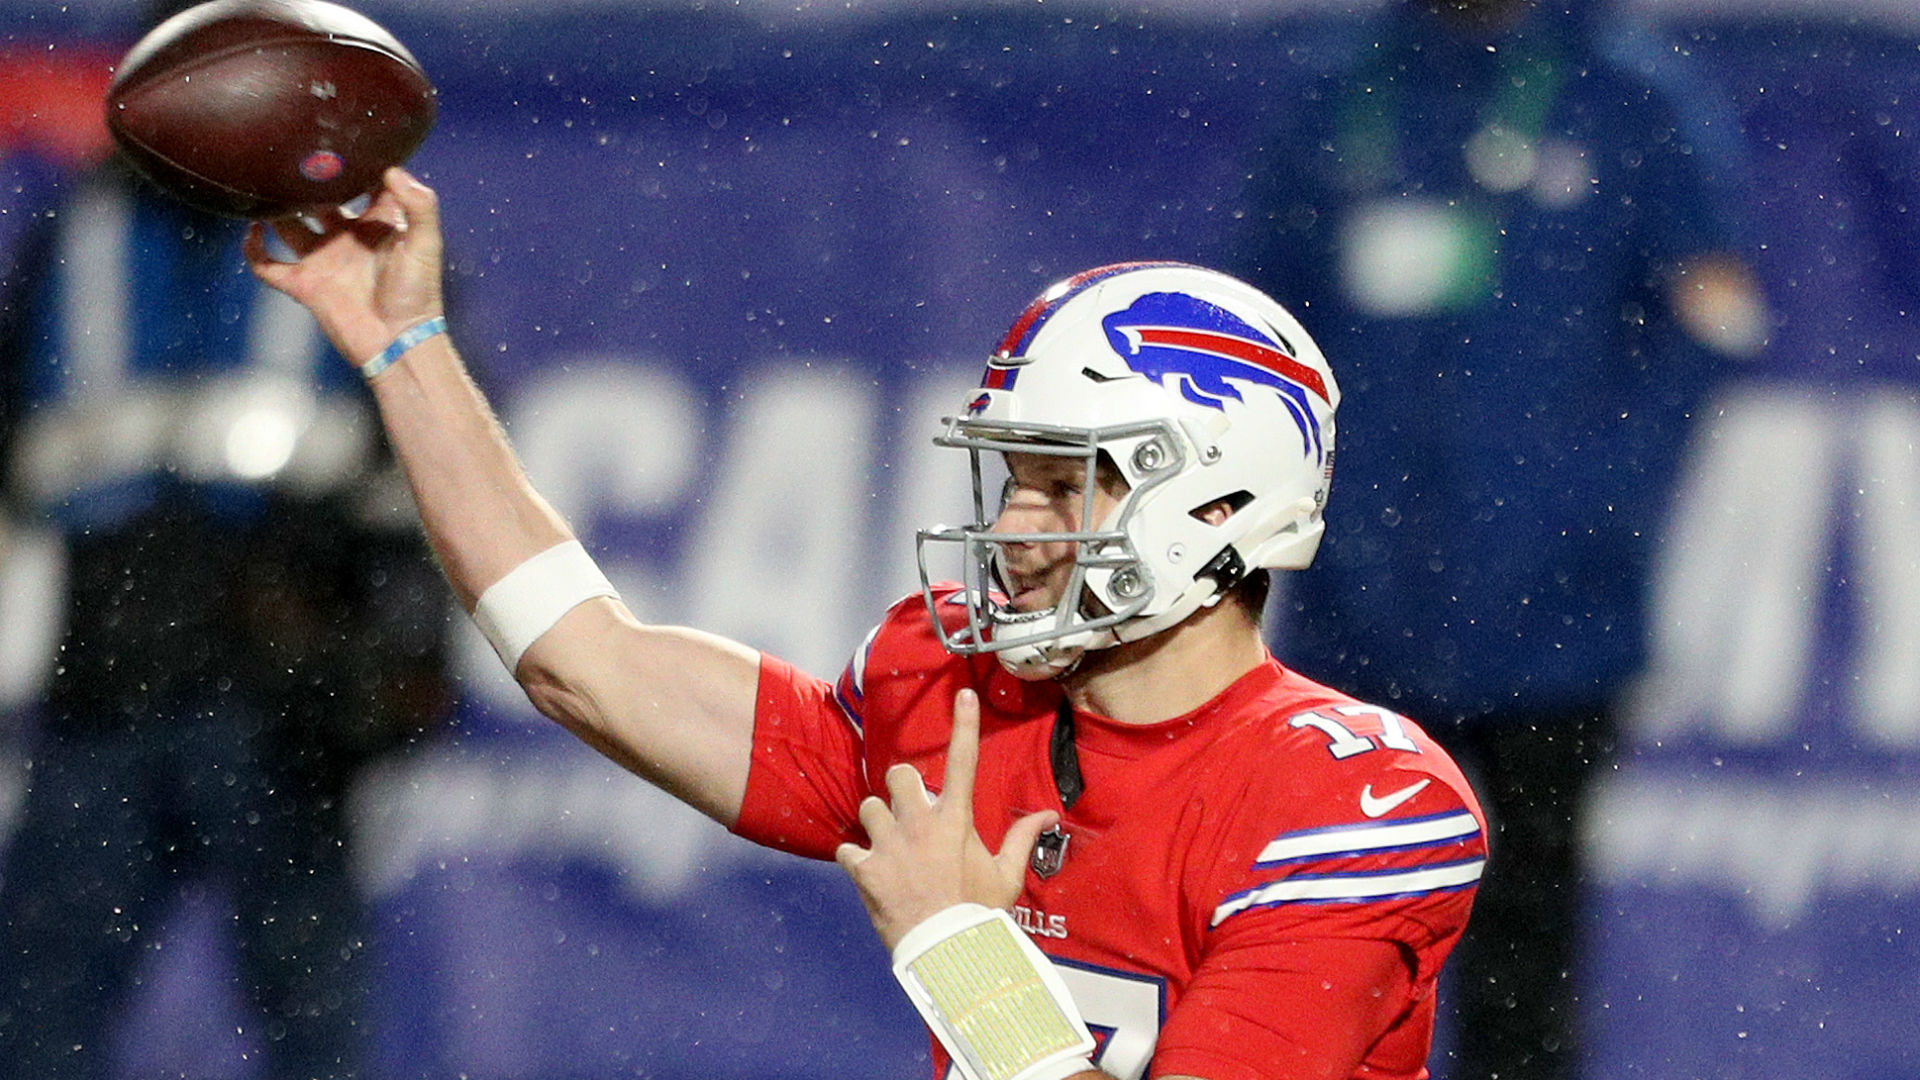 Josh Allen's contract details: this is how much guaranteed money Bills QB will make in extension